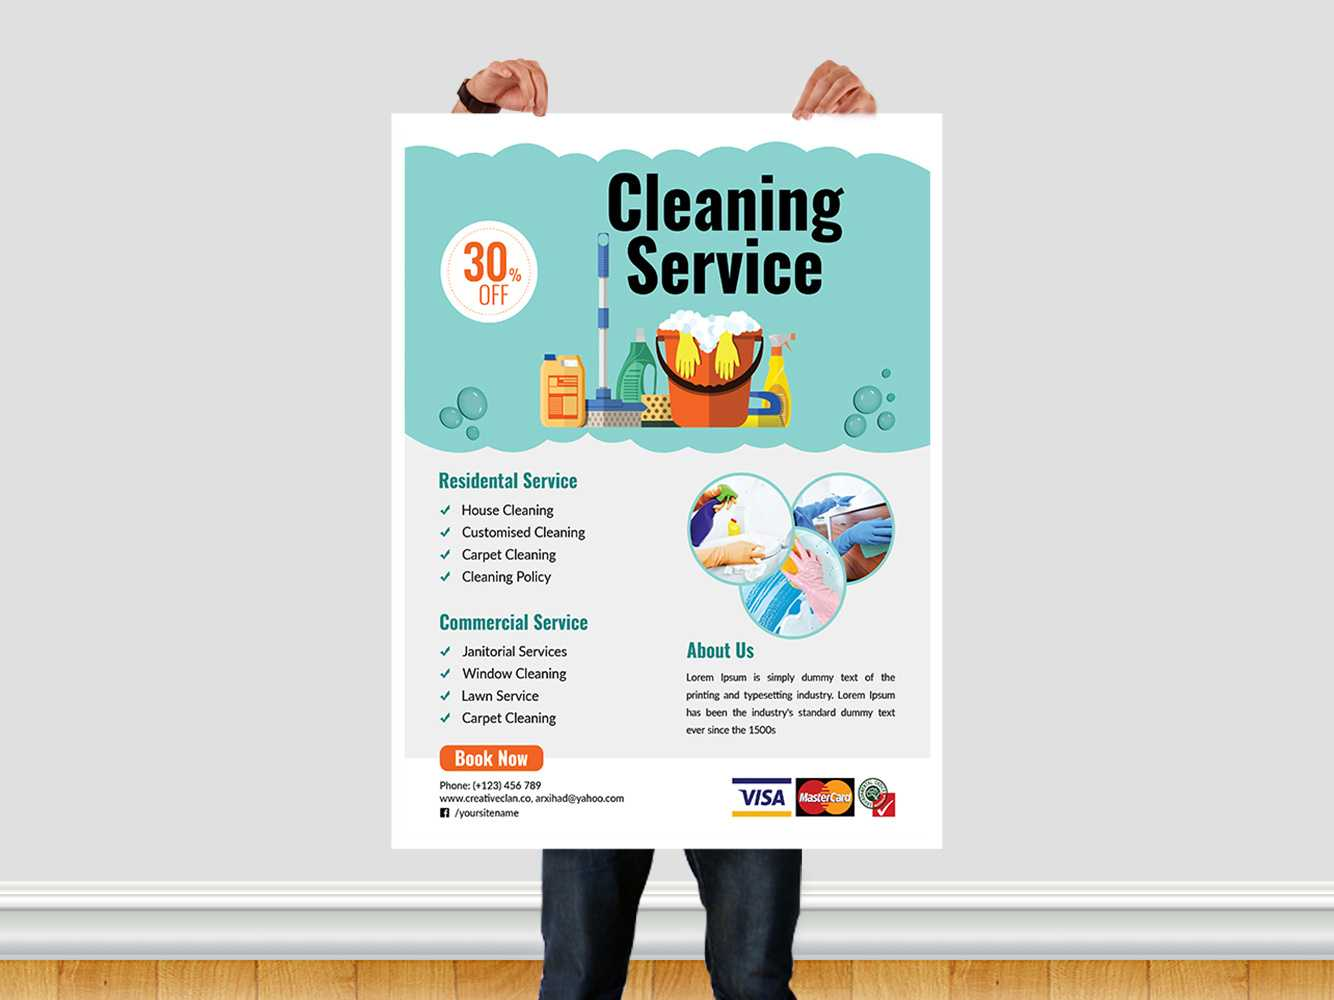 Cleaning Service Flyer Templatear Xihad On Dribbble Regarding Flyers For Cleaning Business Templates